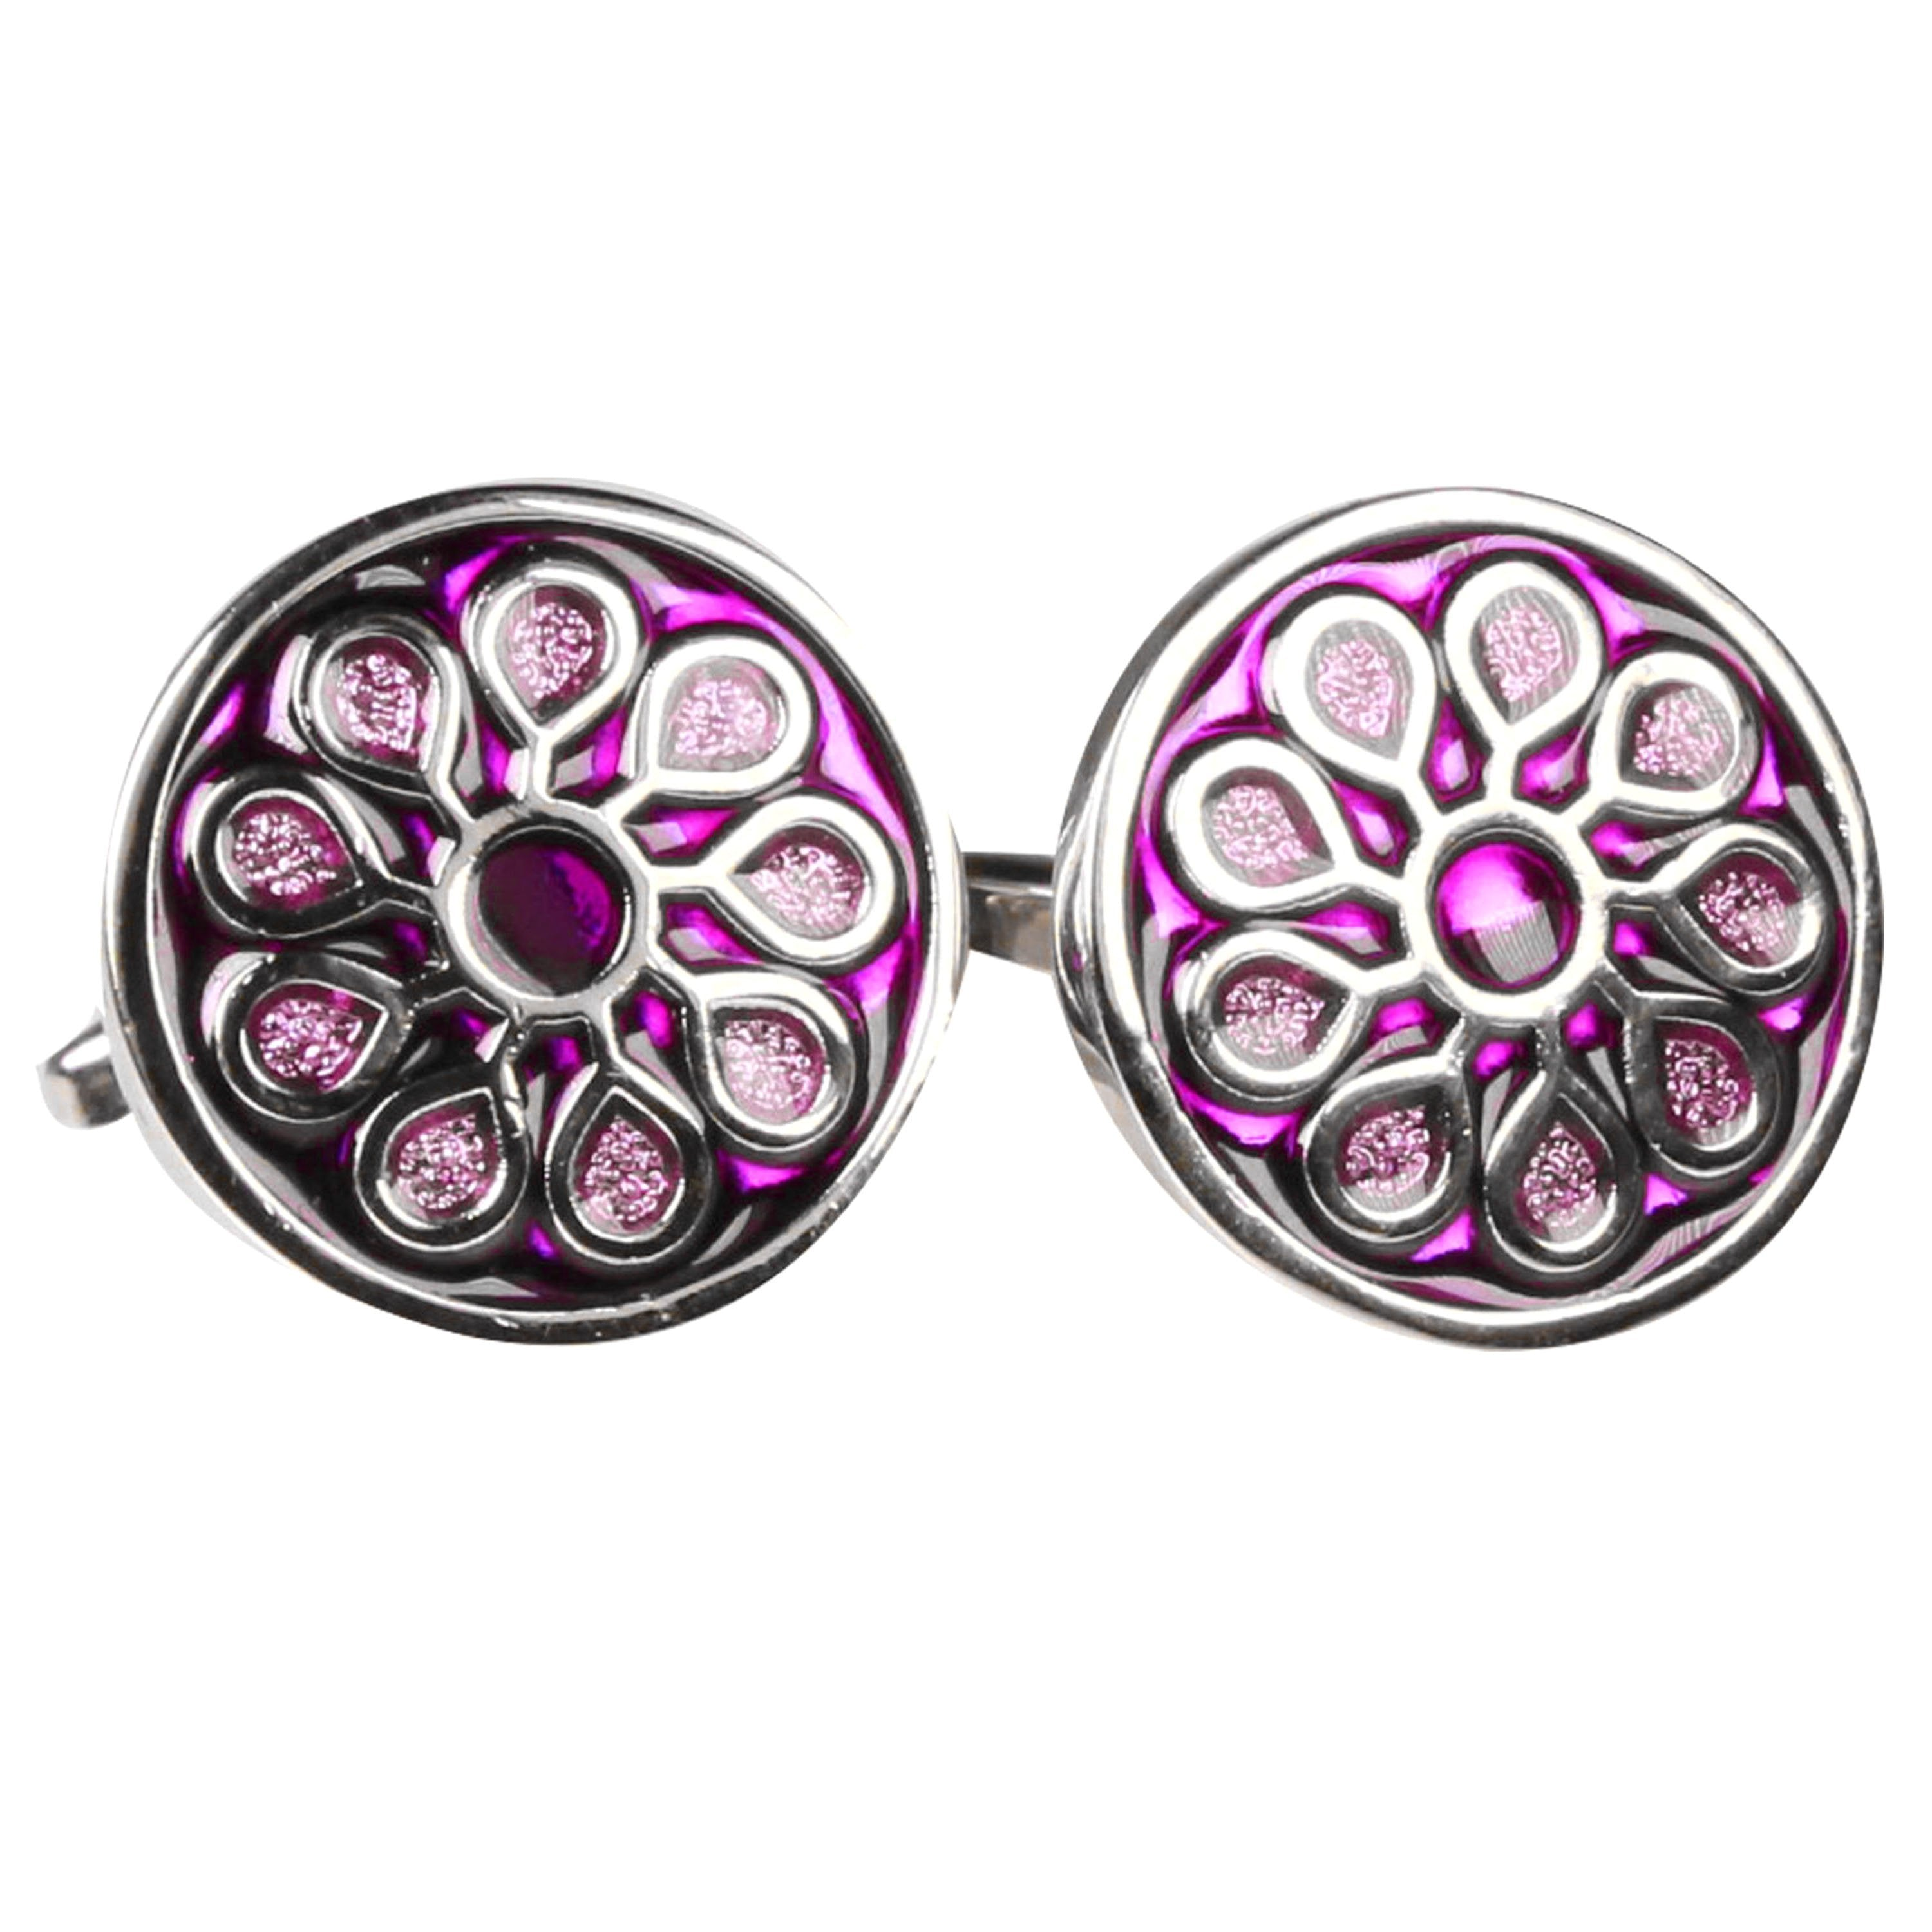 Silvertone Circle Purple Geometric Pattern Cufflinks with Jewelry Box - Ferrecci USA